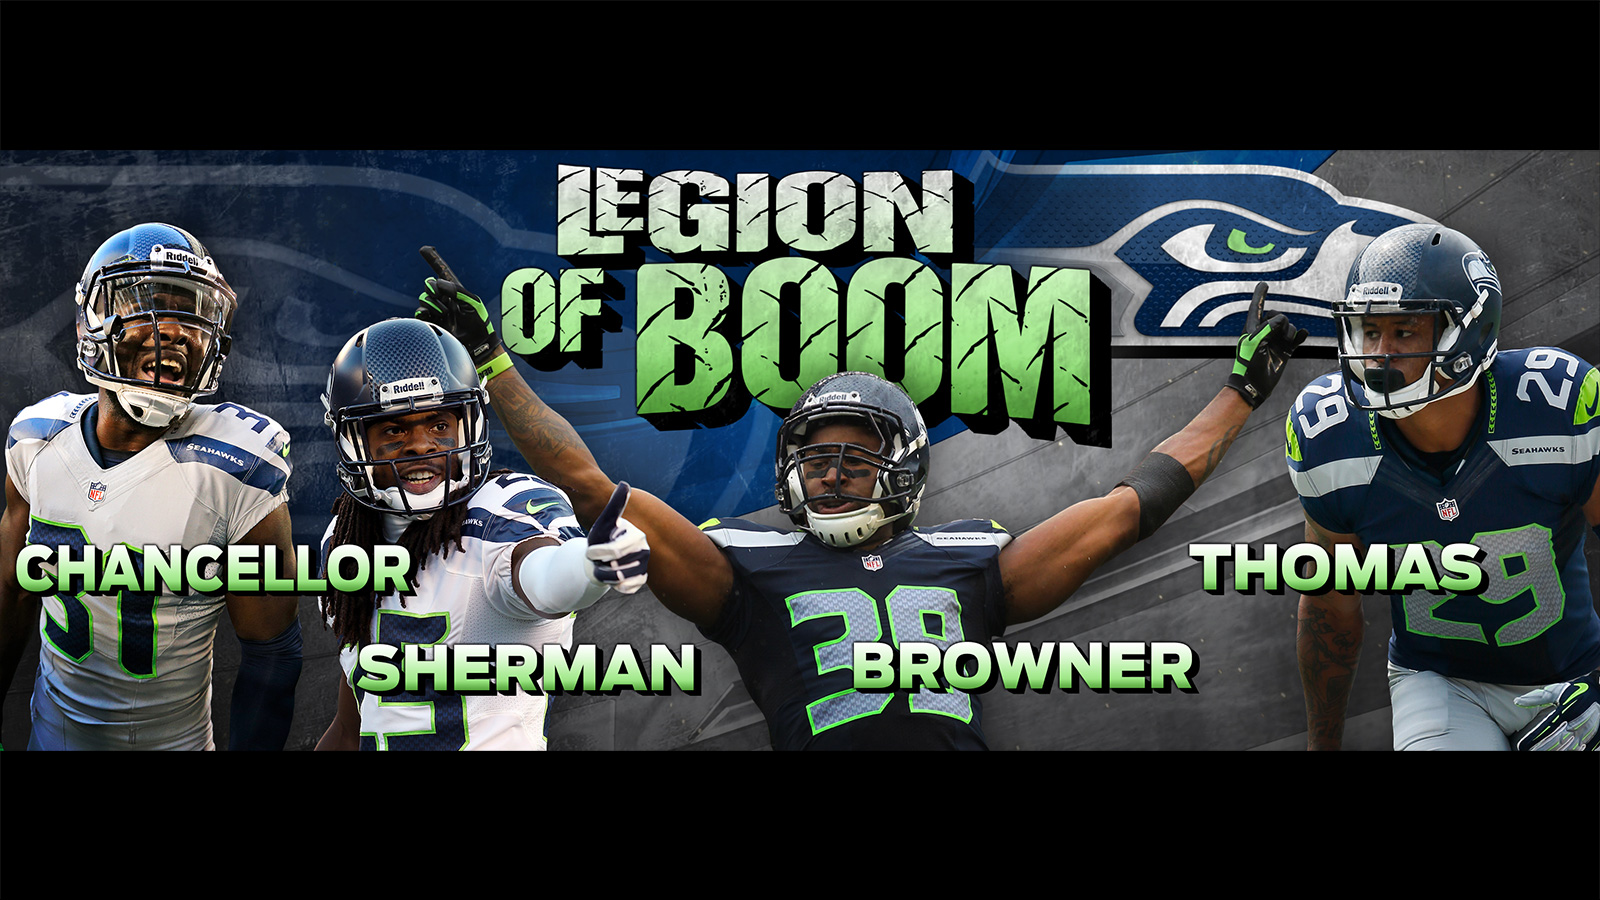 From: http://msn.foxsports.com/watch/fox-football-daily/video/seahawks-dbs-legion-of-boom-uncut-111013?r_src=http://ramp?w=640&h=360